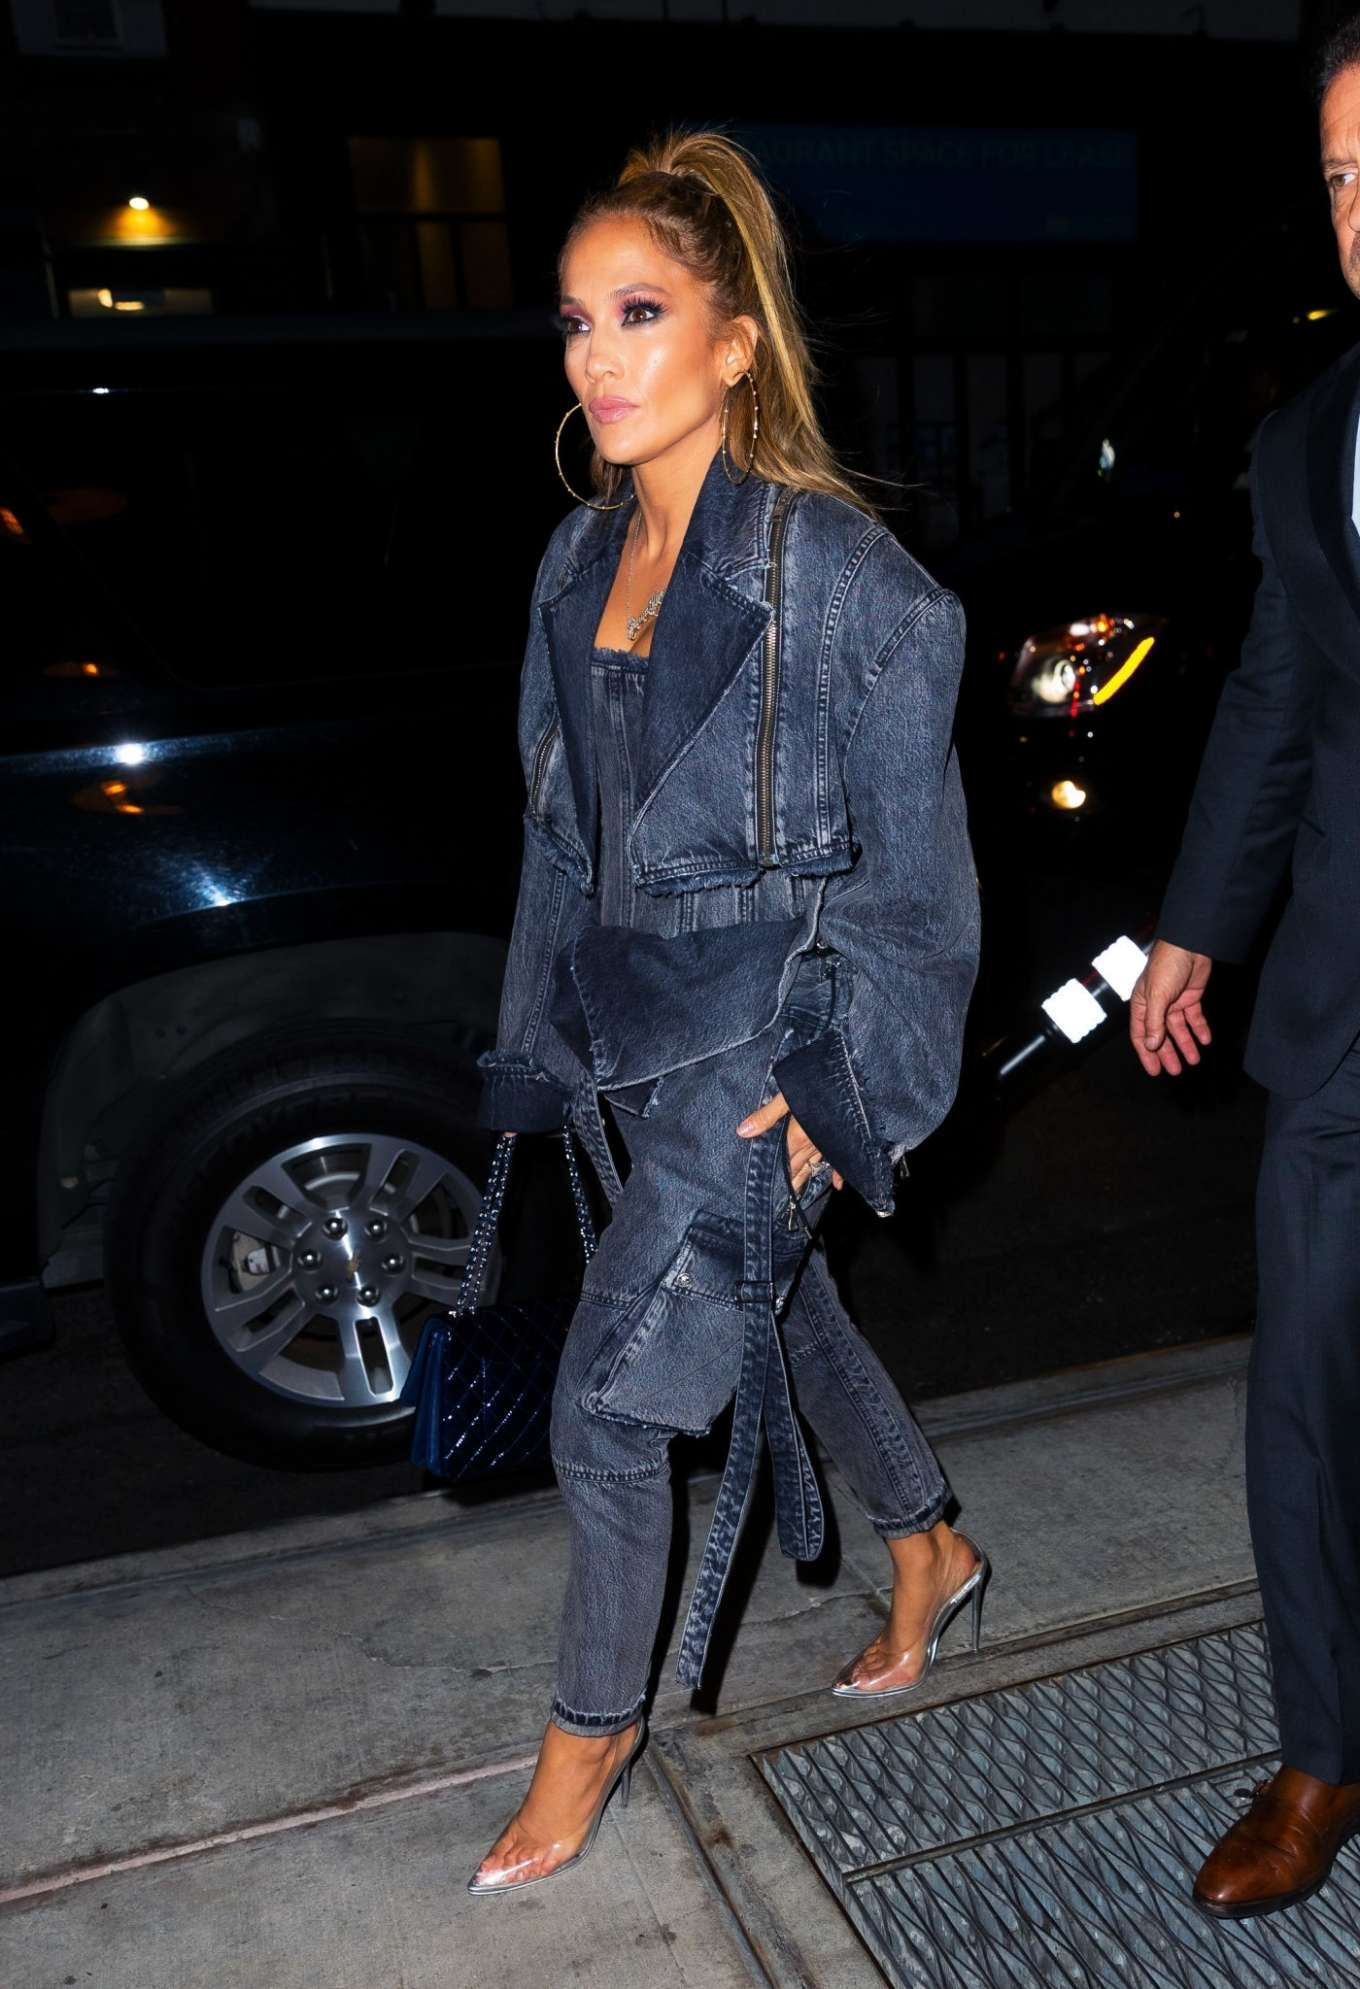 Jennifer Lopez - Arriving at Special Screening of 'Hustlers' in NYC